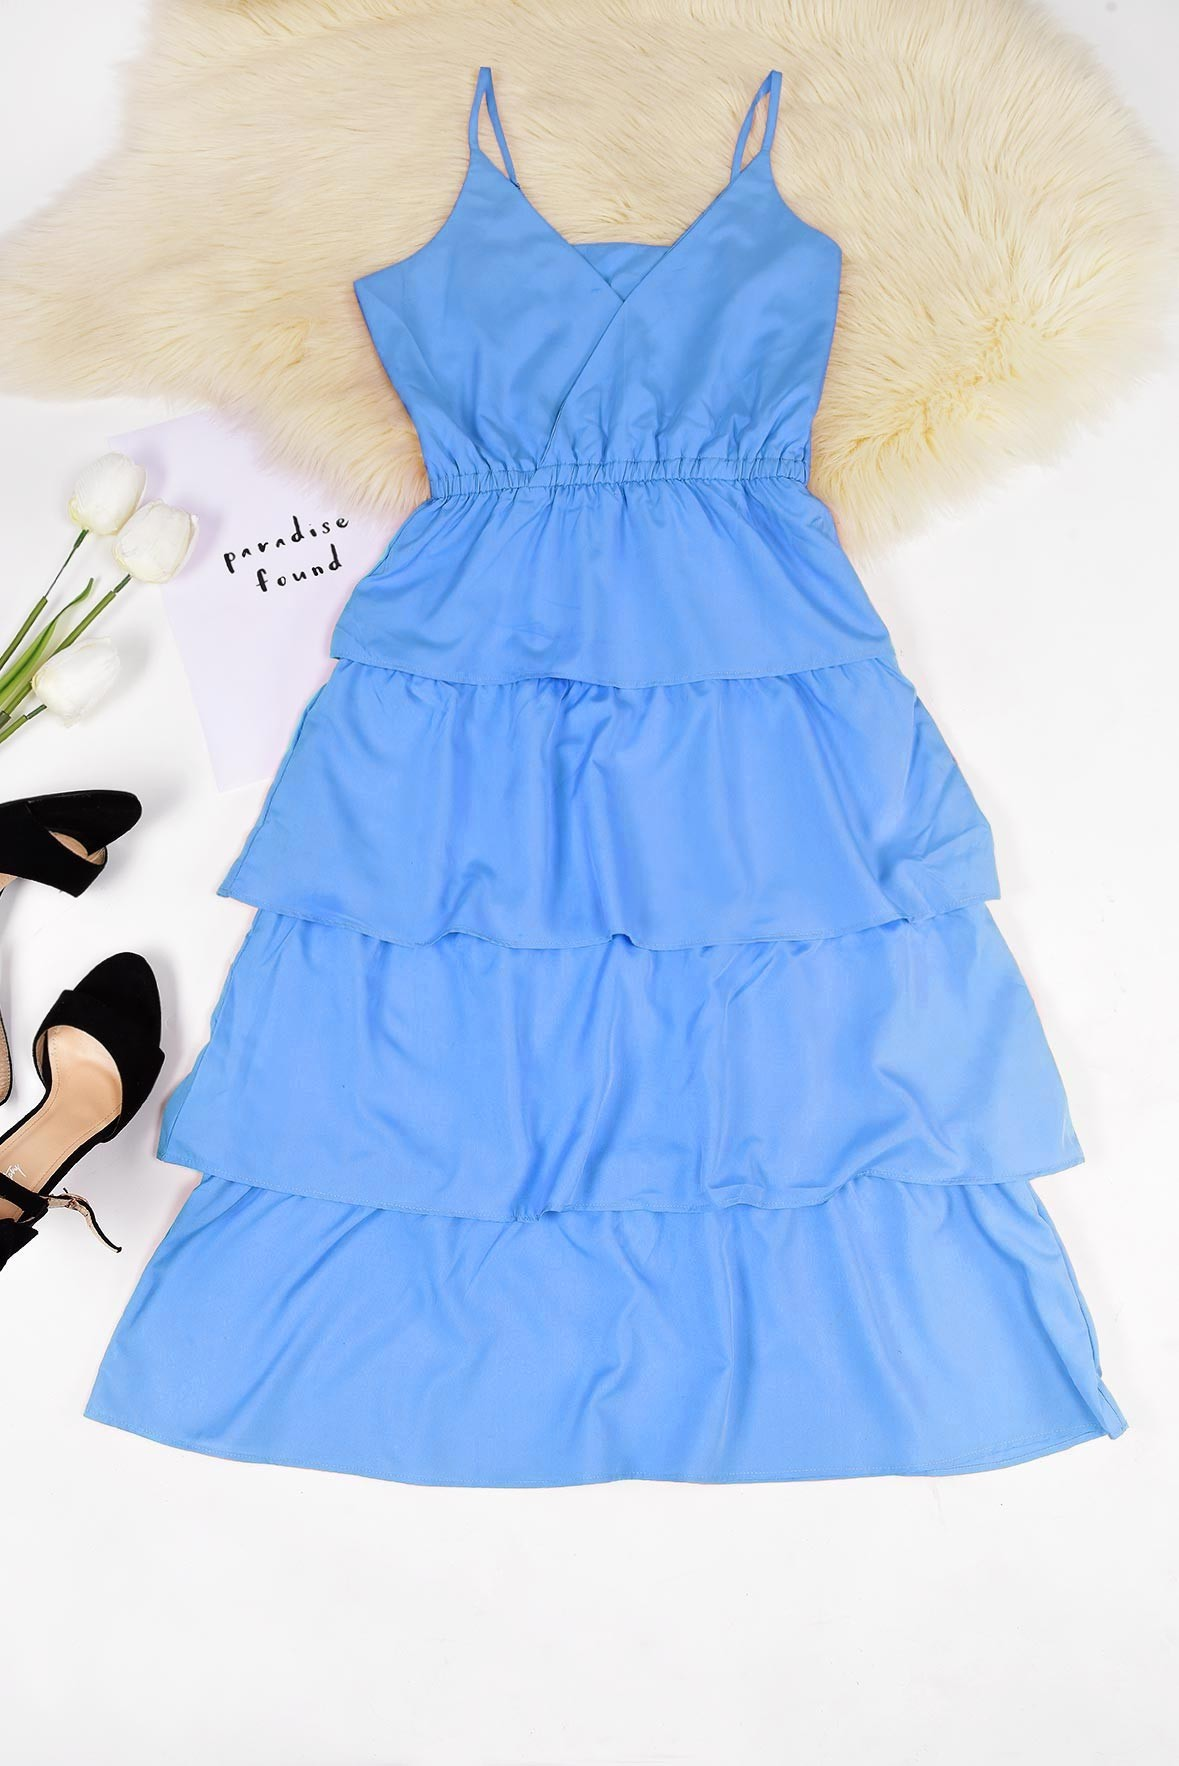 Create your look blue dress